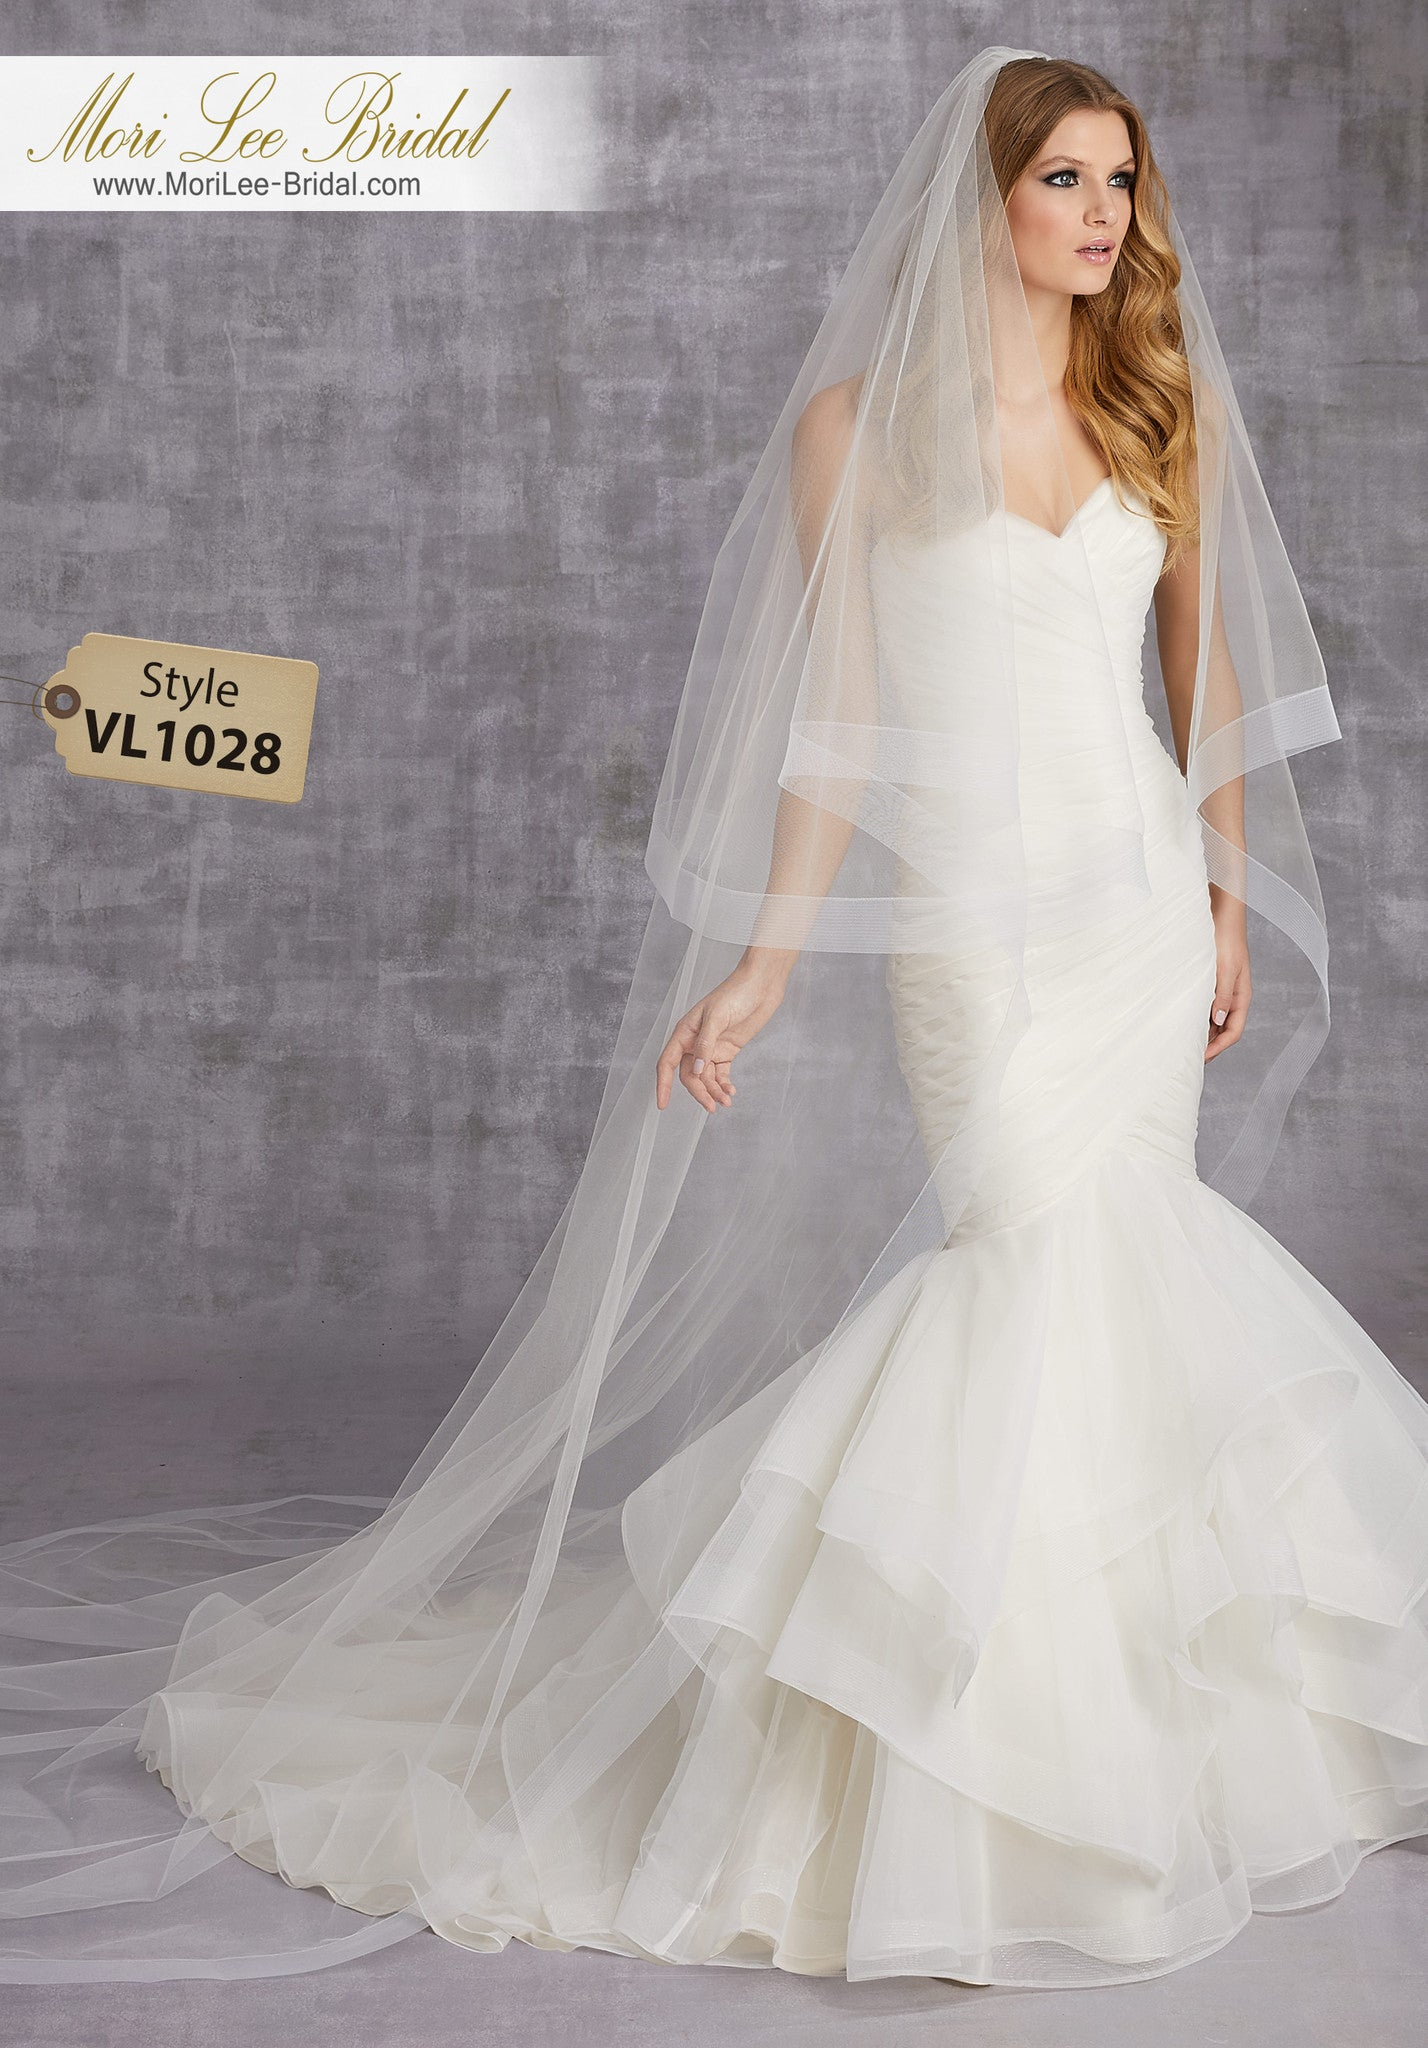 VL1028C - Mori Lee Bridal